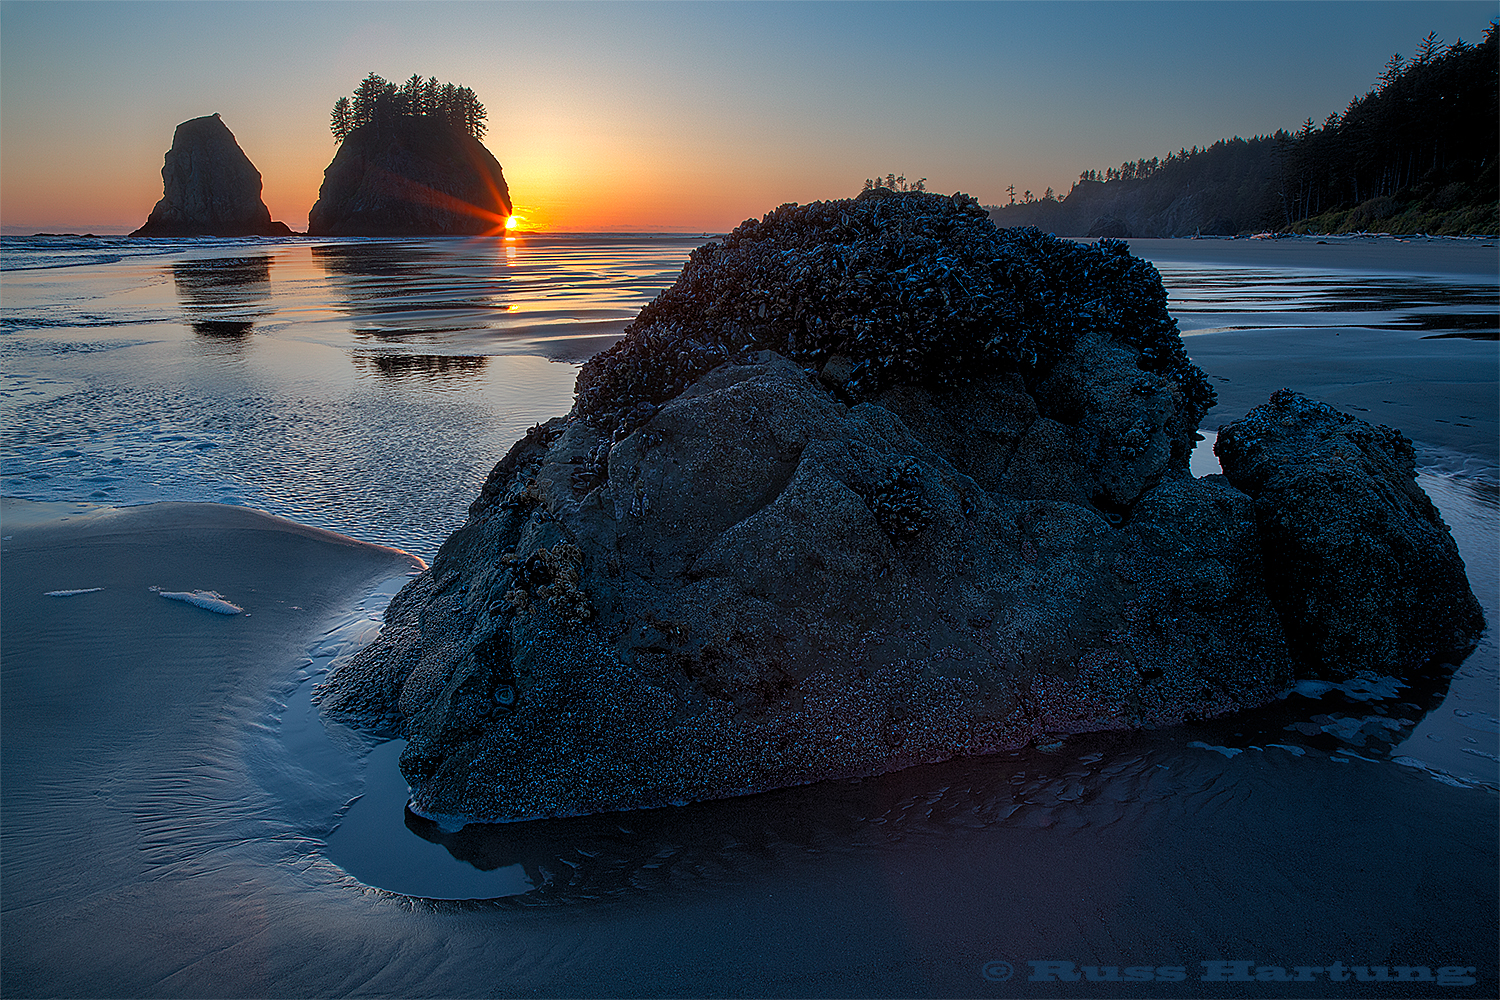 Second Beach at sunset. This is a wilderness beach in the Olympic  National Park in Northwest Washington state.